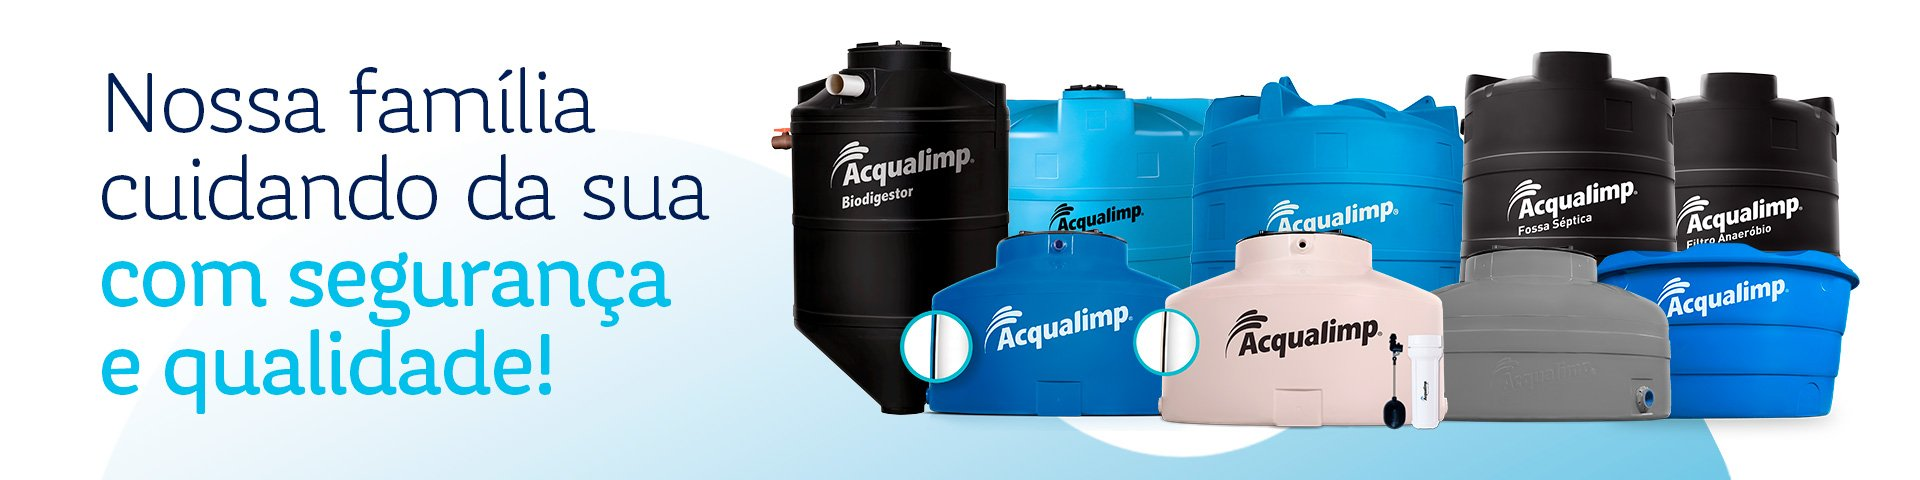 Acqualimp Institucional